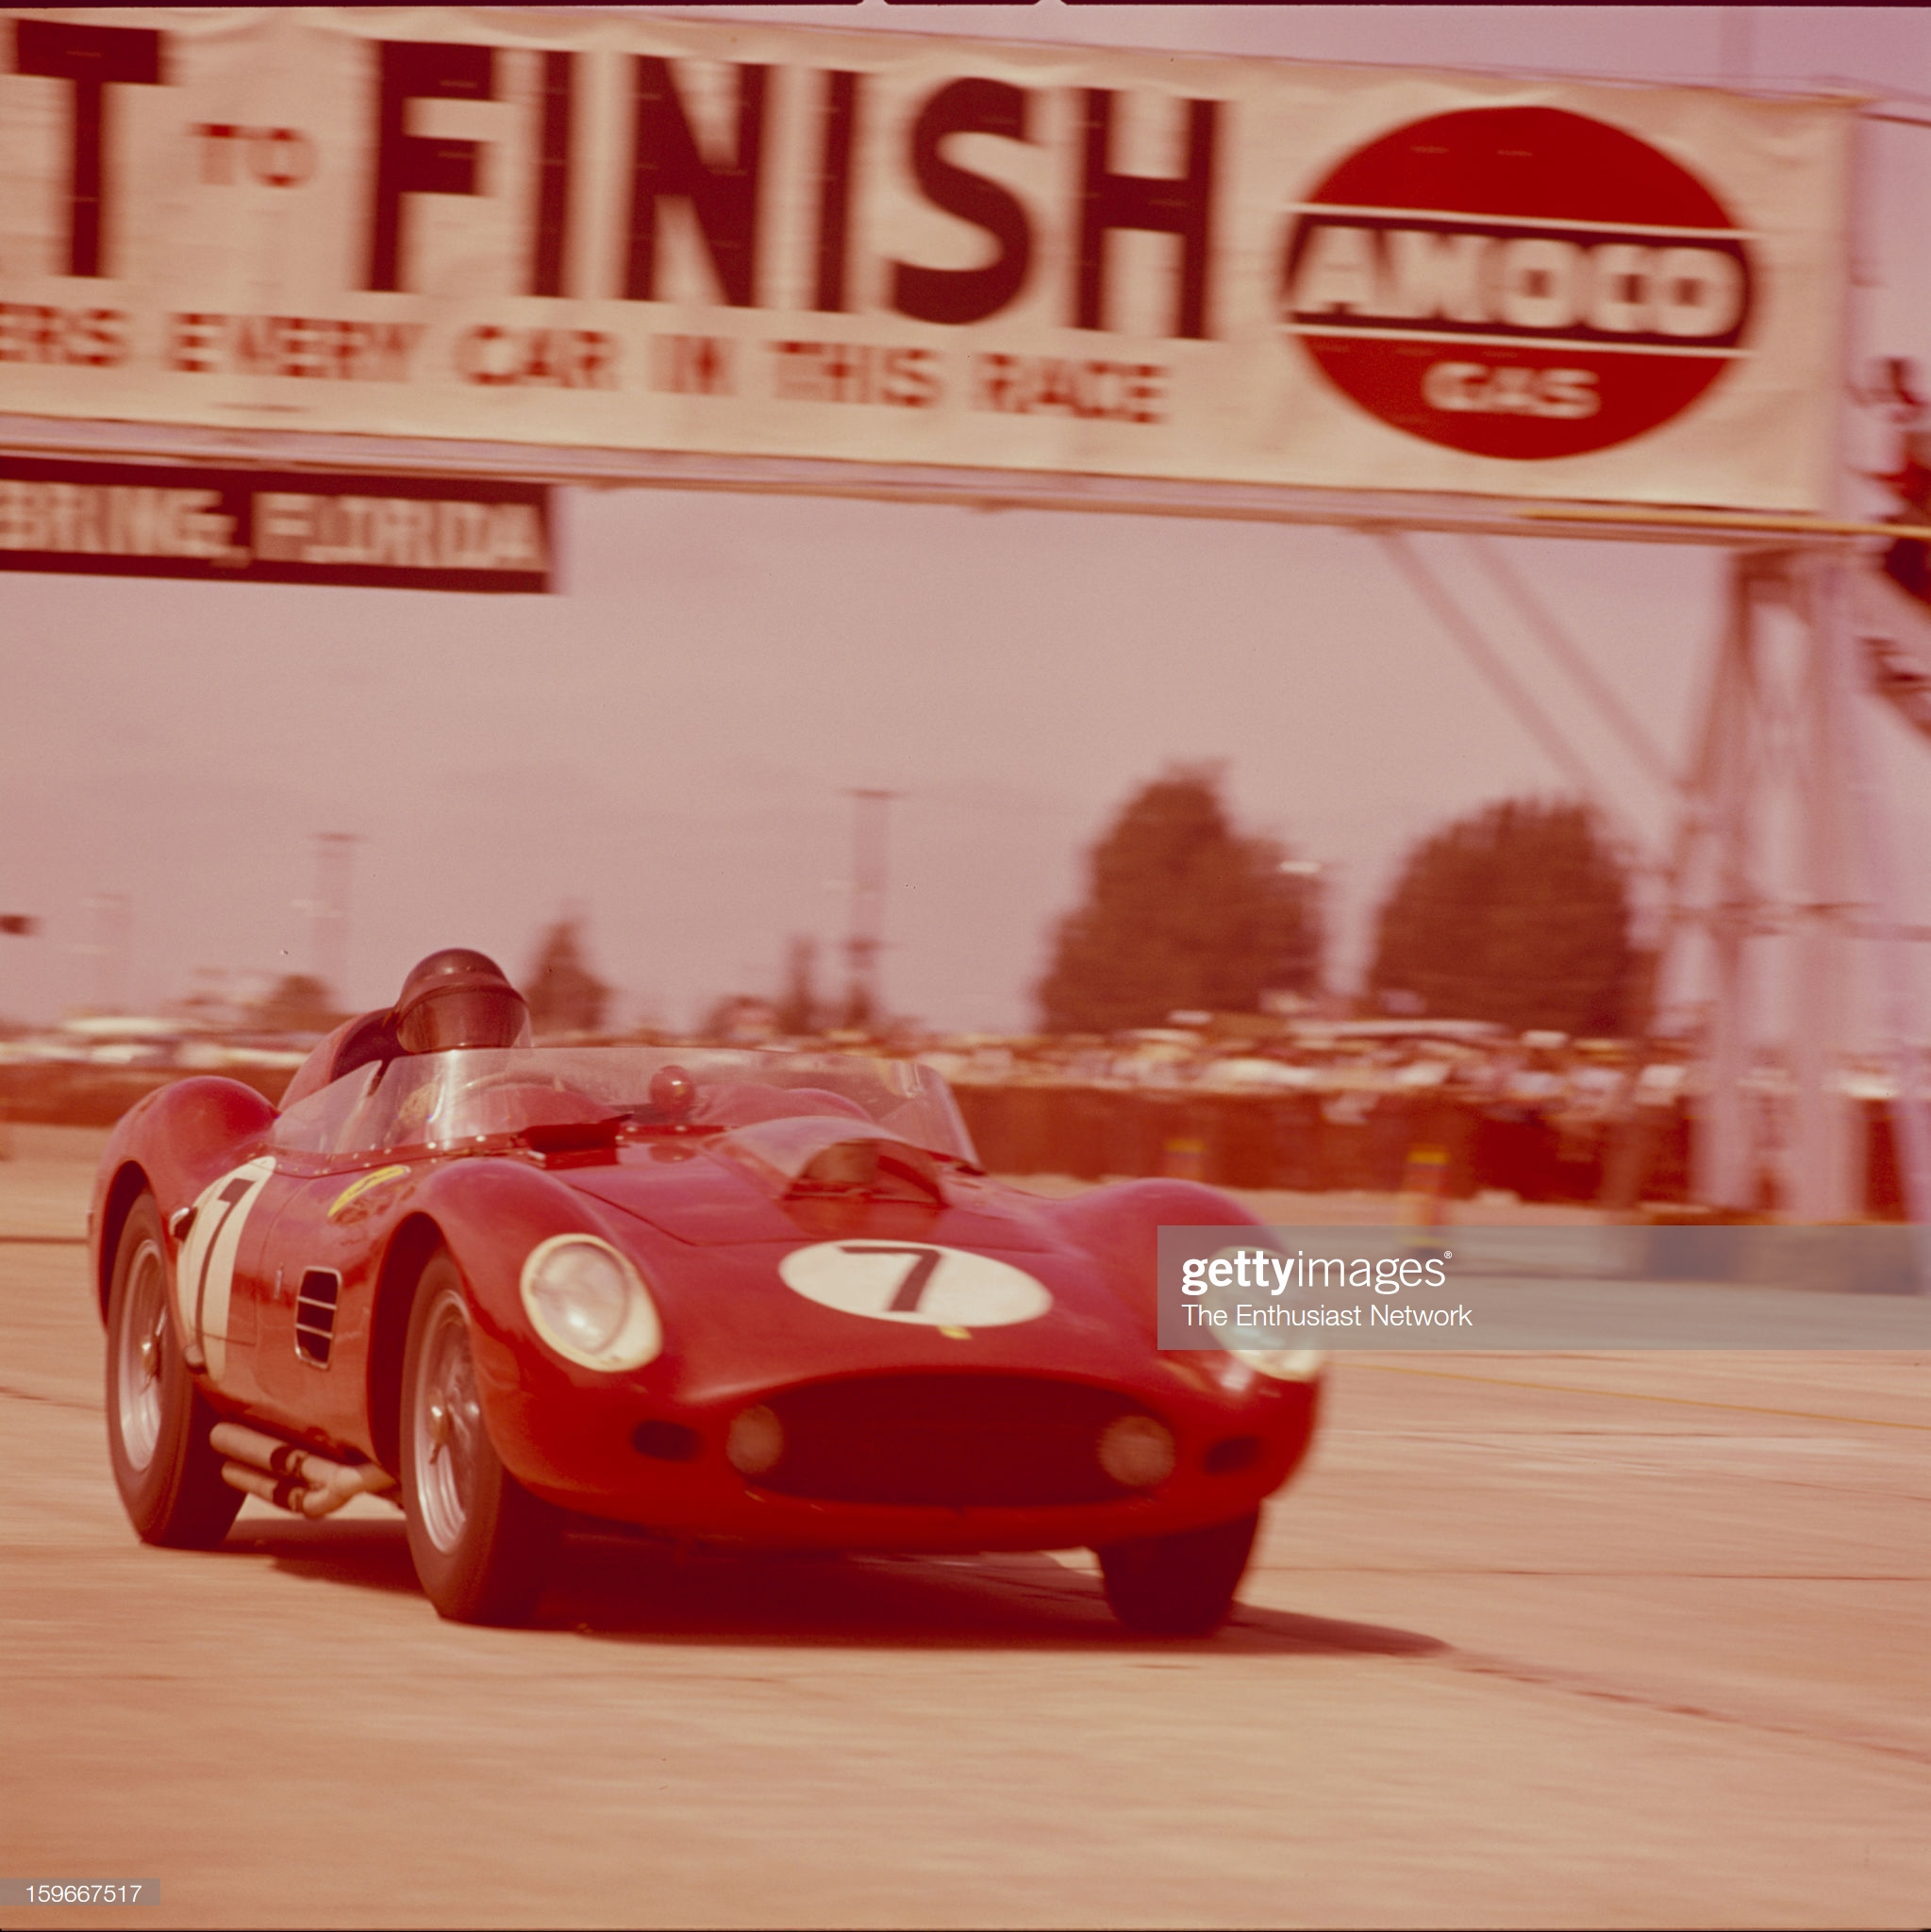 Dan Gurney at the 12 Hours of Sebring 1959, with his Ferrari 250 Testarossa - Photo by Bob D'Olivo/The Enthusiast Network via Getty Images/Getty Images